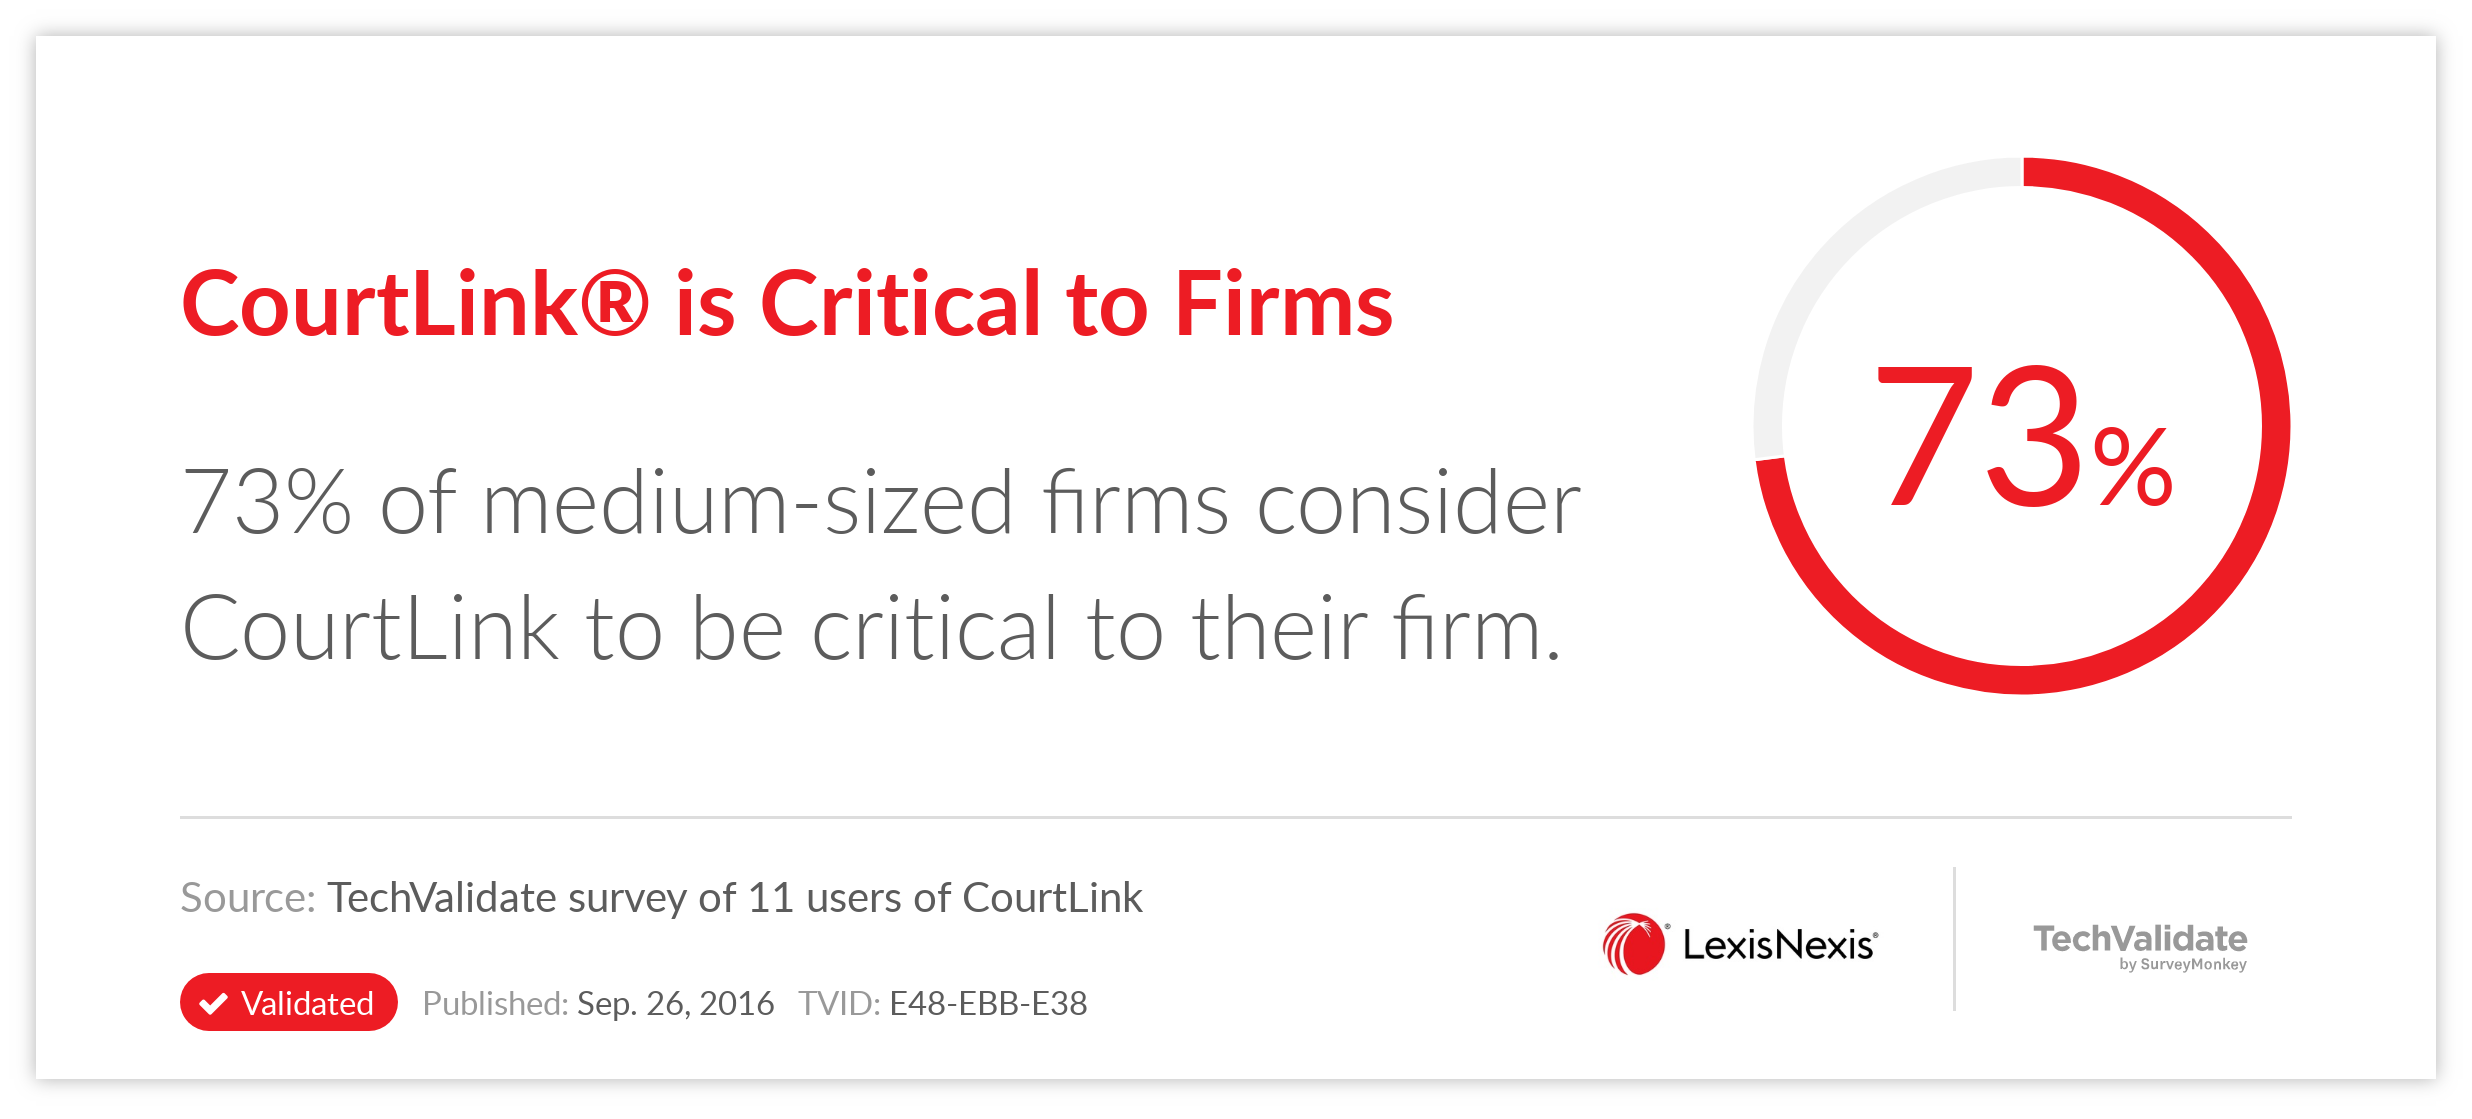 CourtLink(R) is Critical to Firms